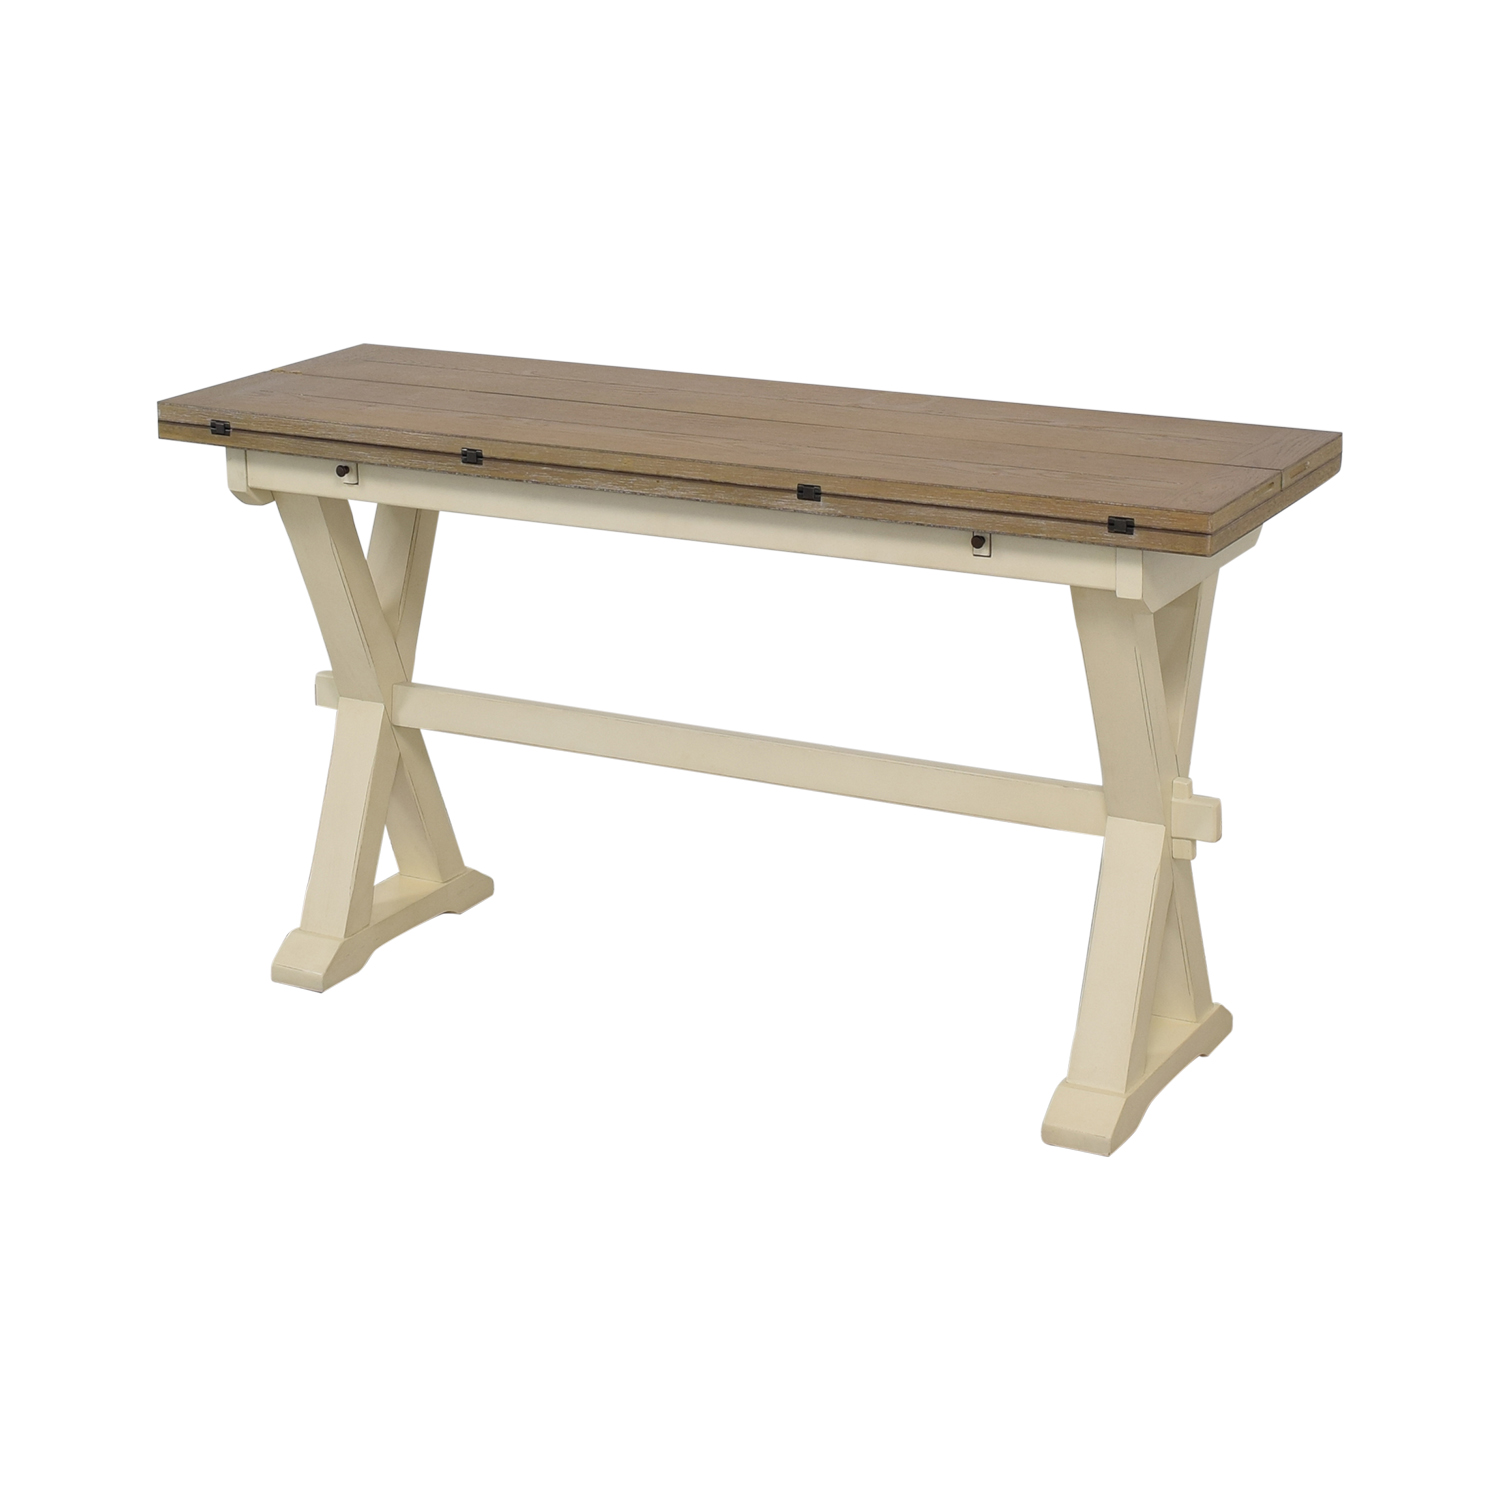 Universal Furniture Universal Furniture Great Rooms Drop Leaf Console Table dimensions